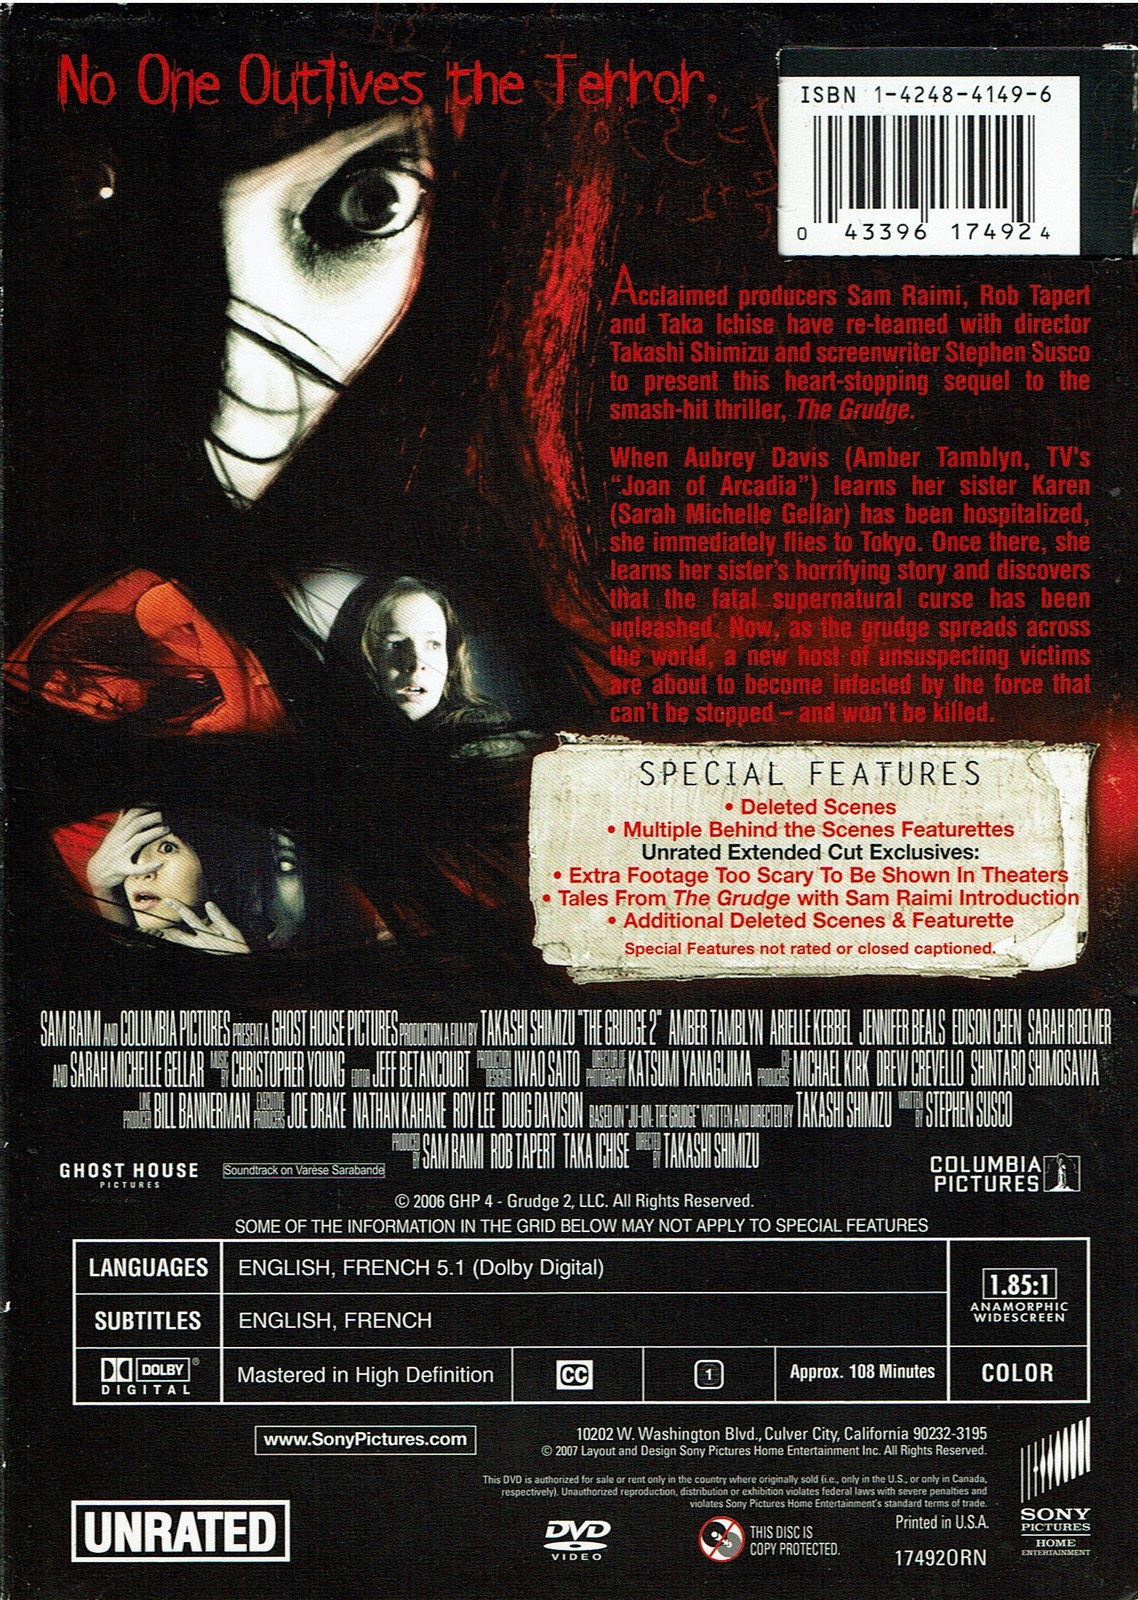 The Grudge 2, Unrated Director's Cut, DVD, 2007, Widescreen